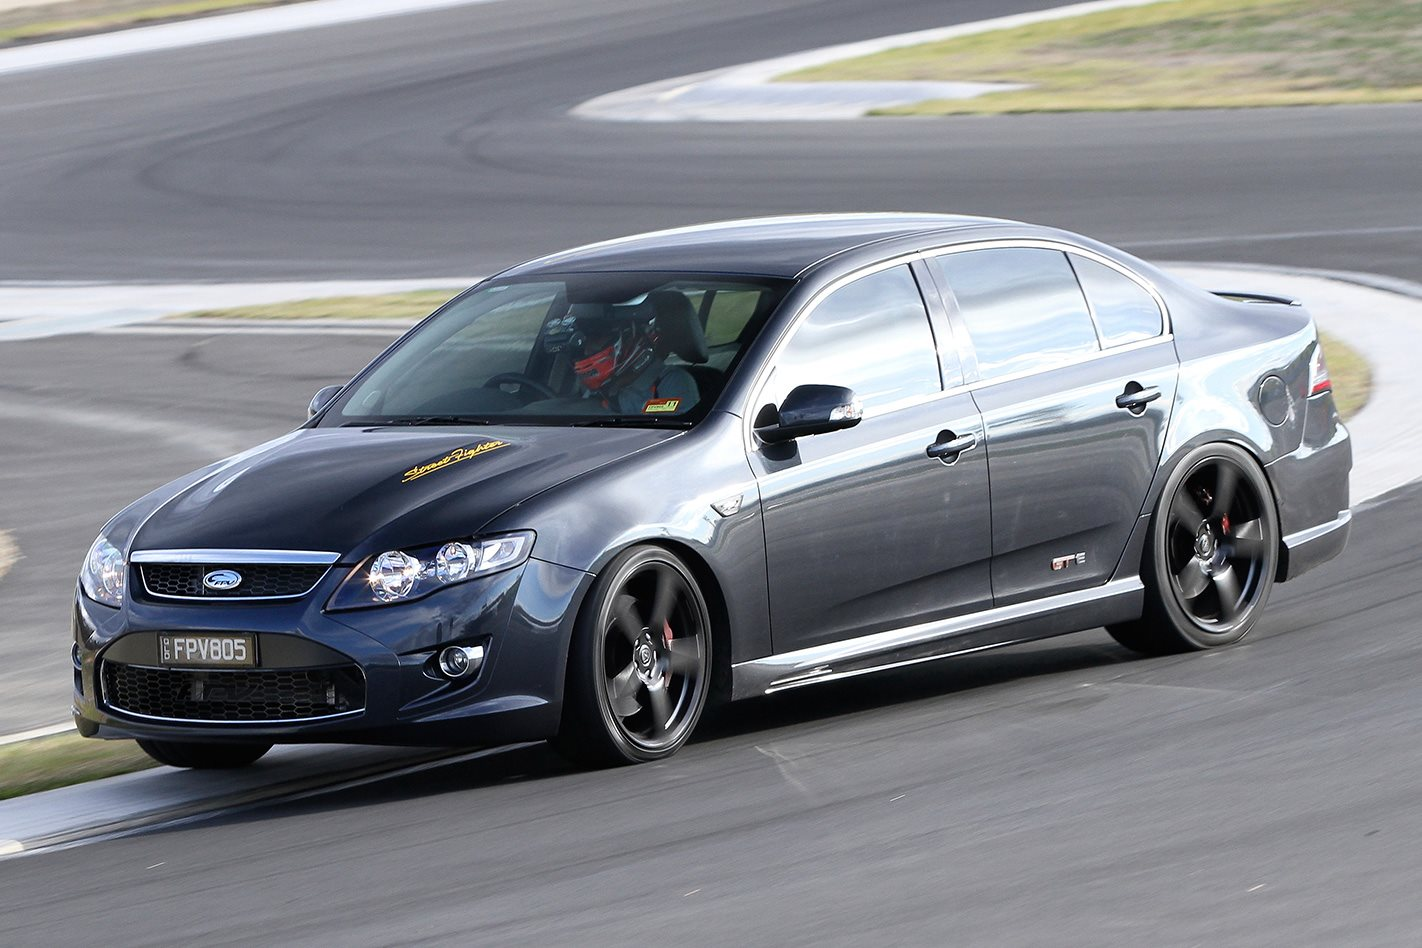 2012-Walkinshaw-W557.jpg